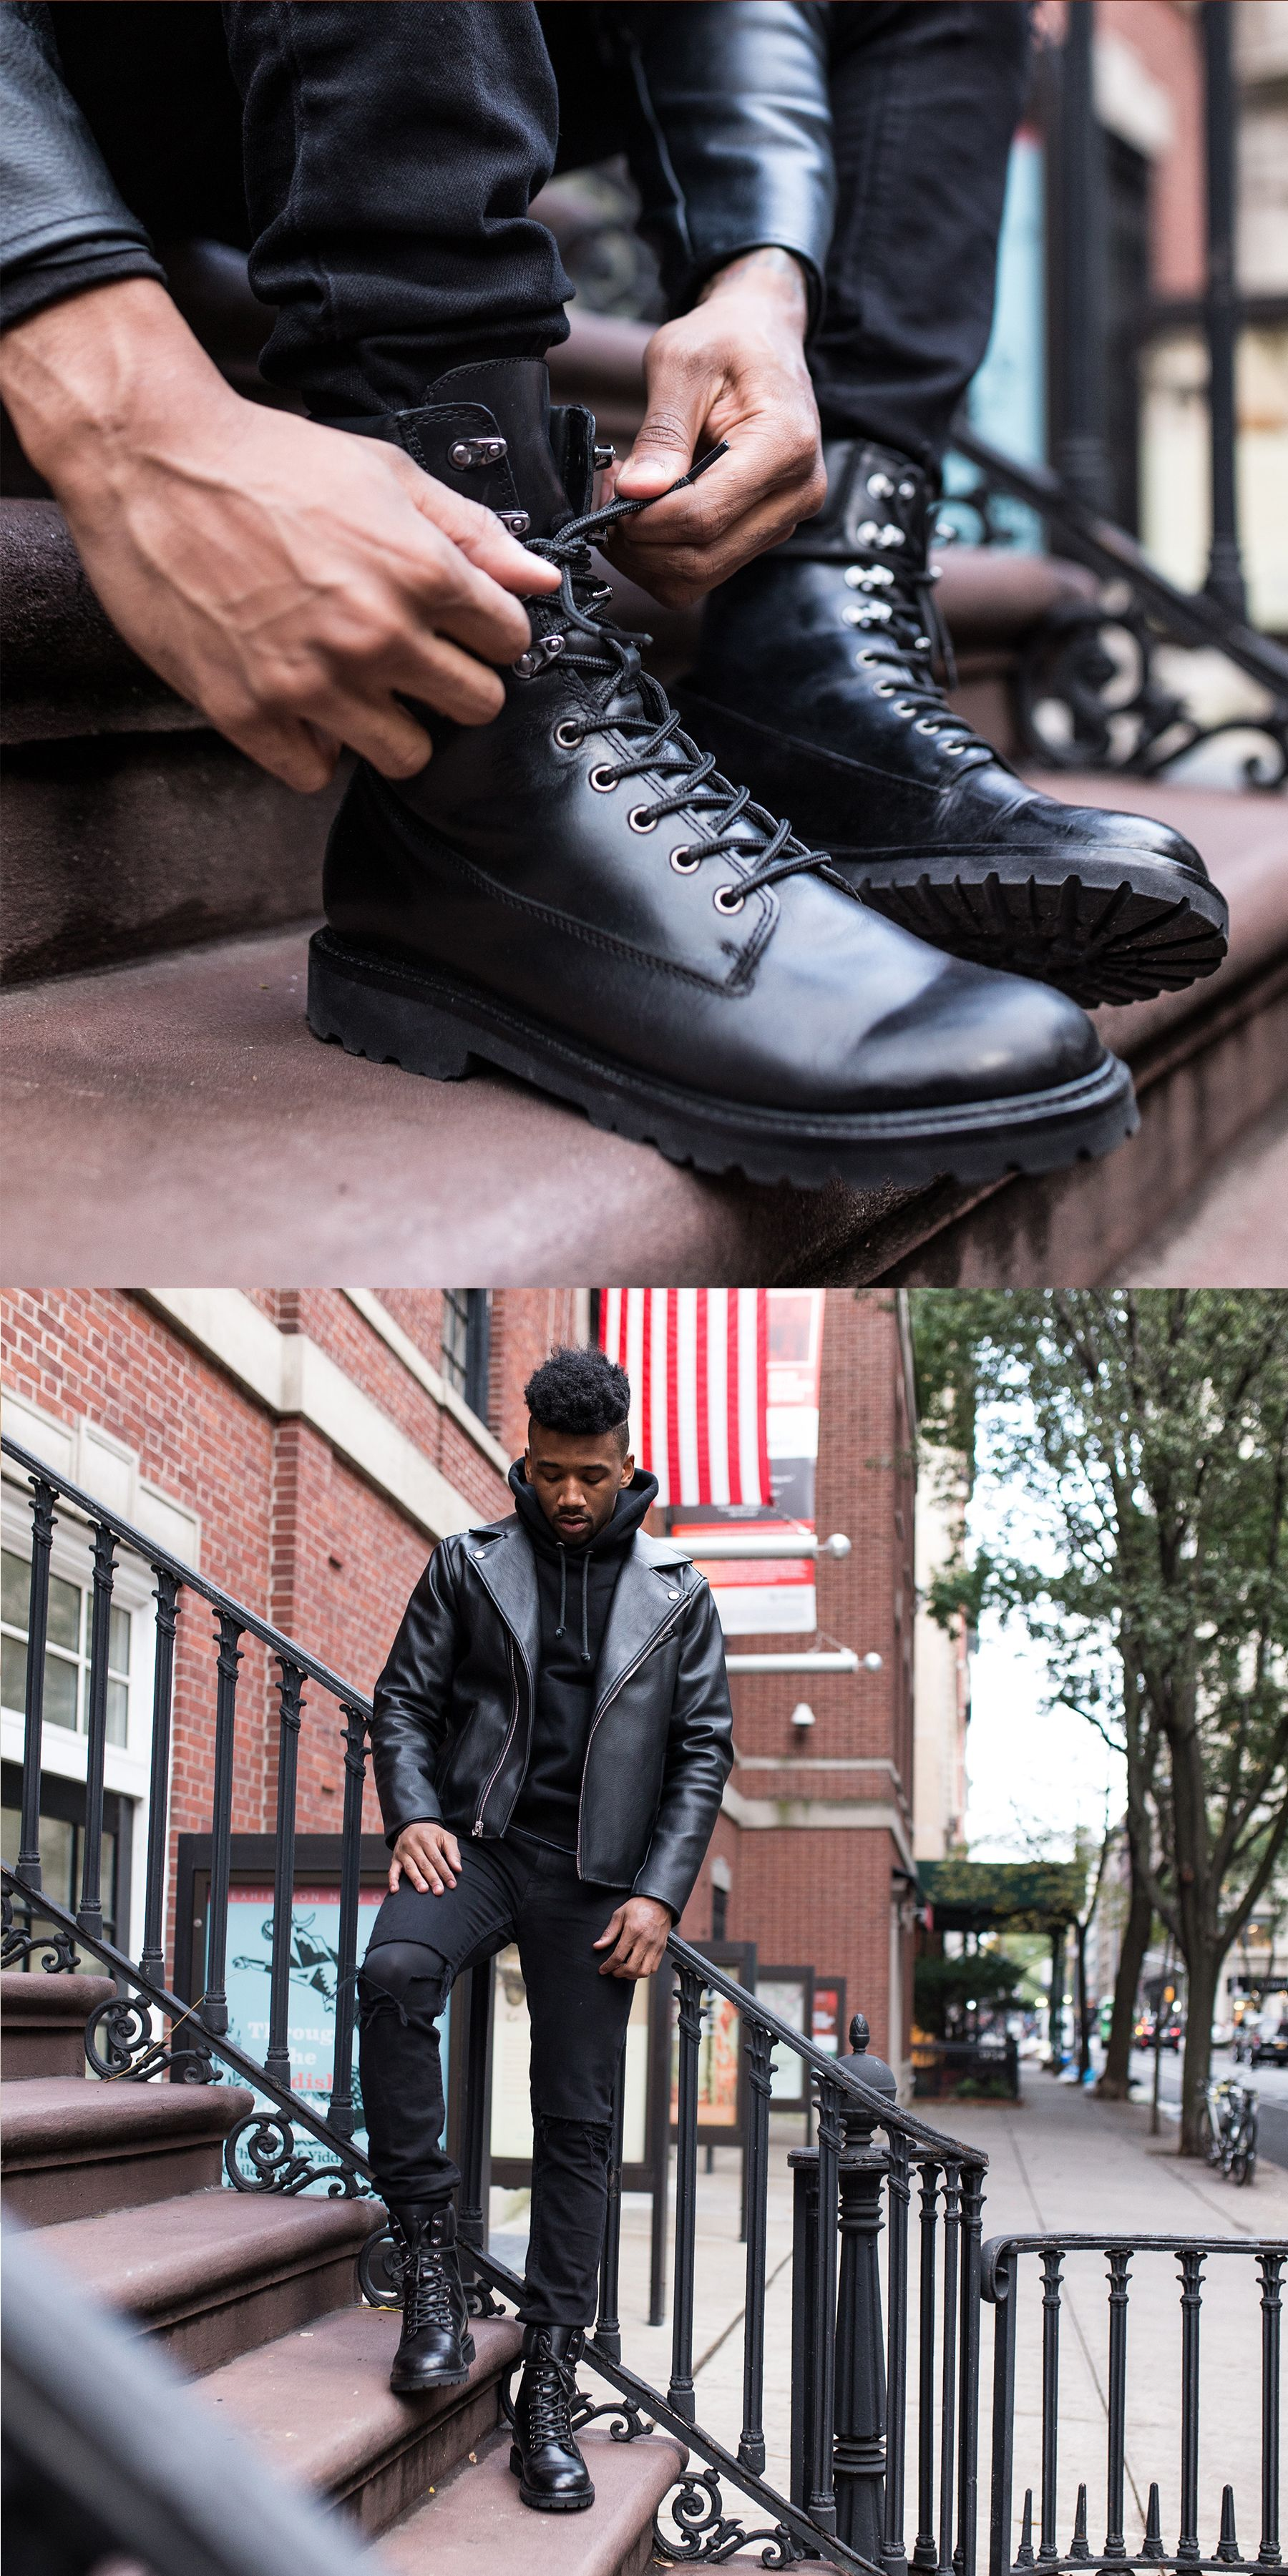 73b623f1b885 Shop the Men s Explorer Combat Boot at thursdayboots.com. Available in 3+  Colors. 3,000+ 5-Star Reviews · Easy   Secure Checkout · Free Shipping    Returns